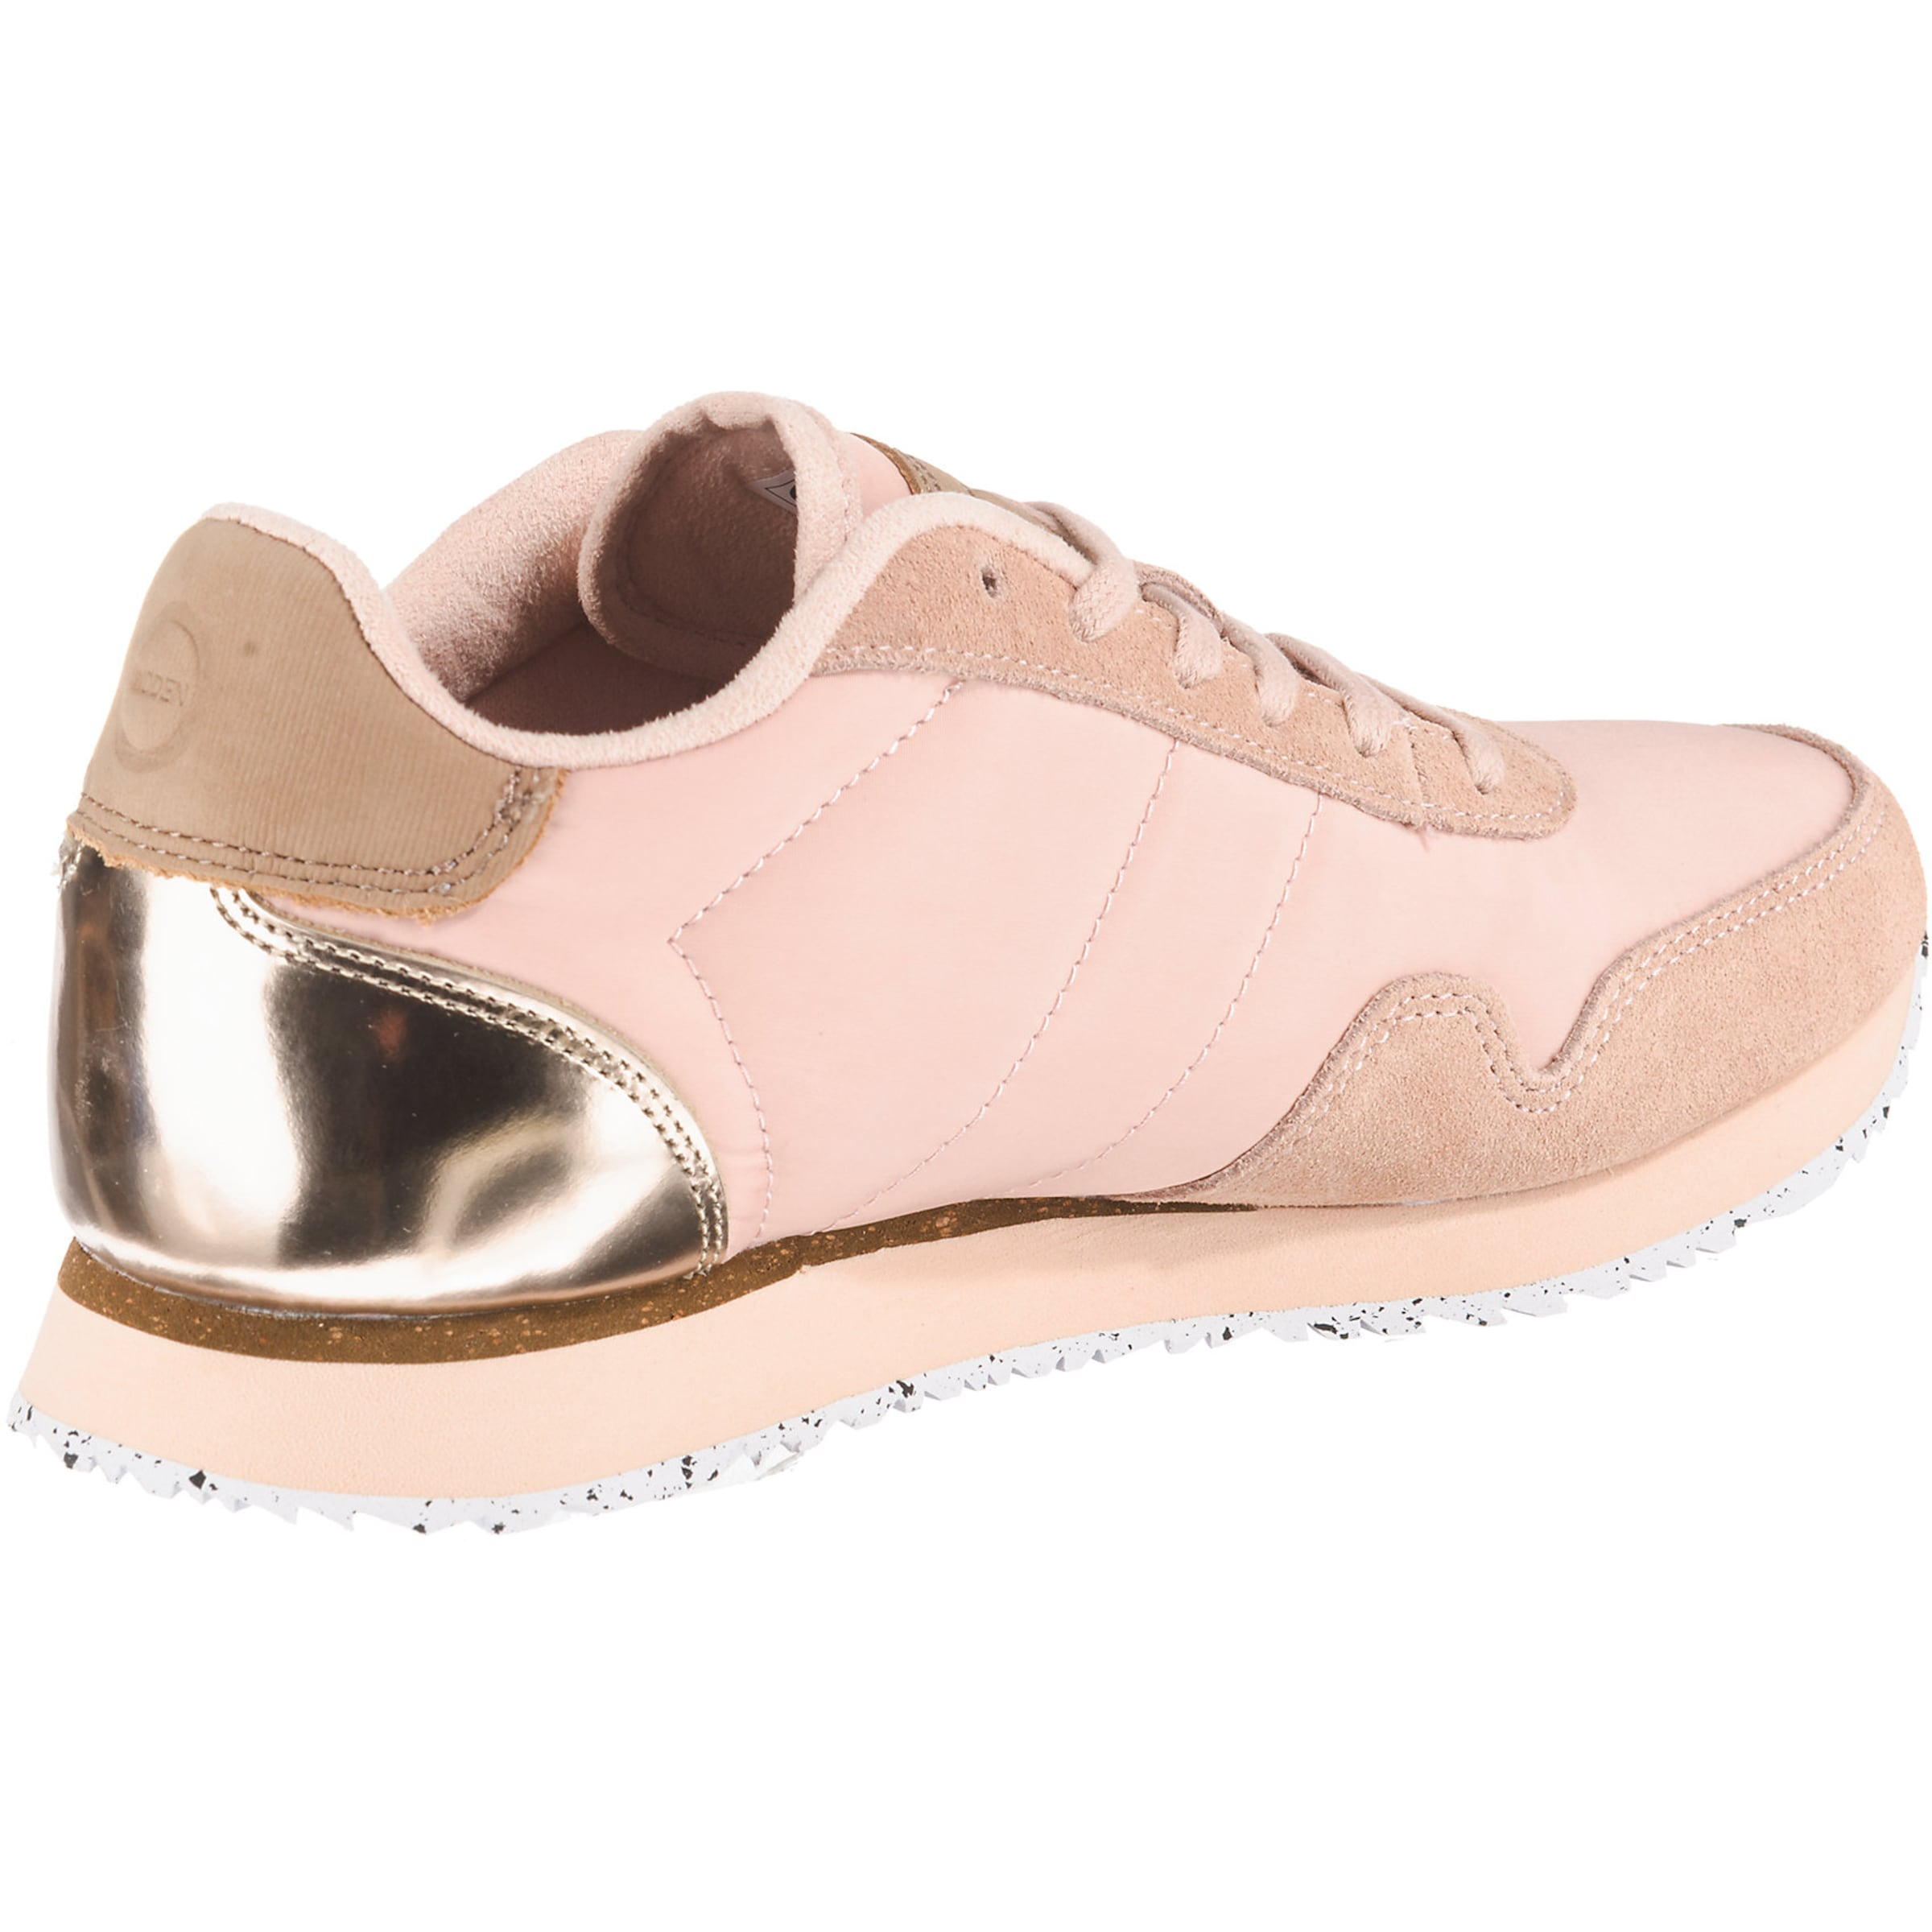 2' Low Pink Woden Sneakers In 'nora CodxEQWerB